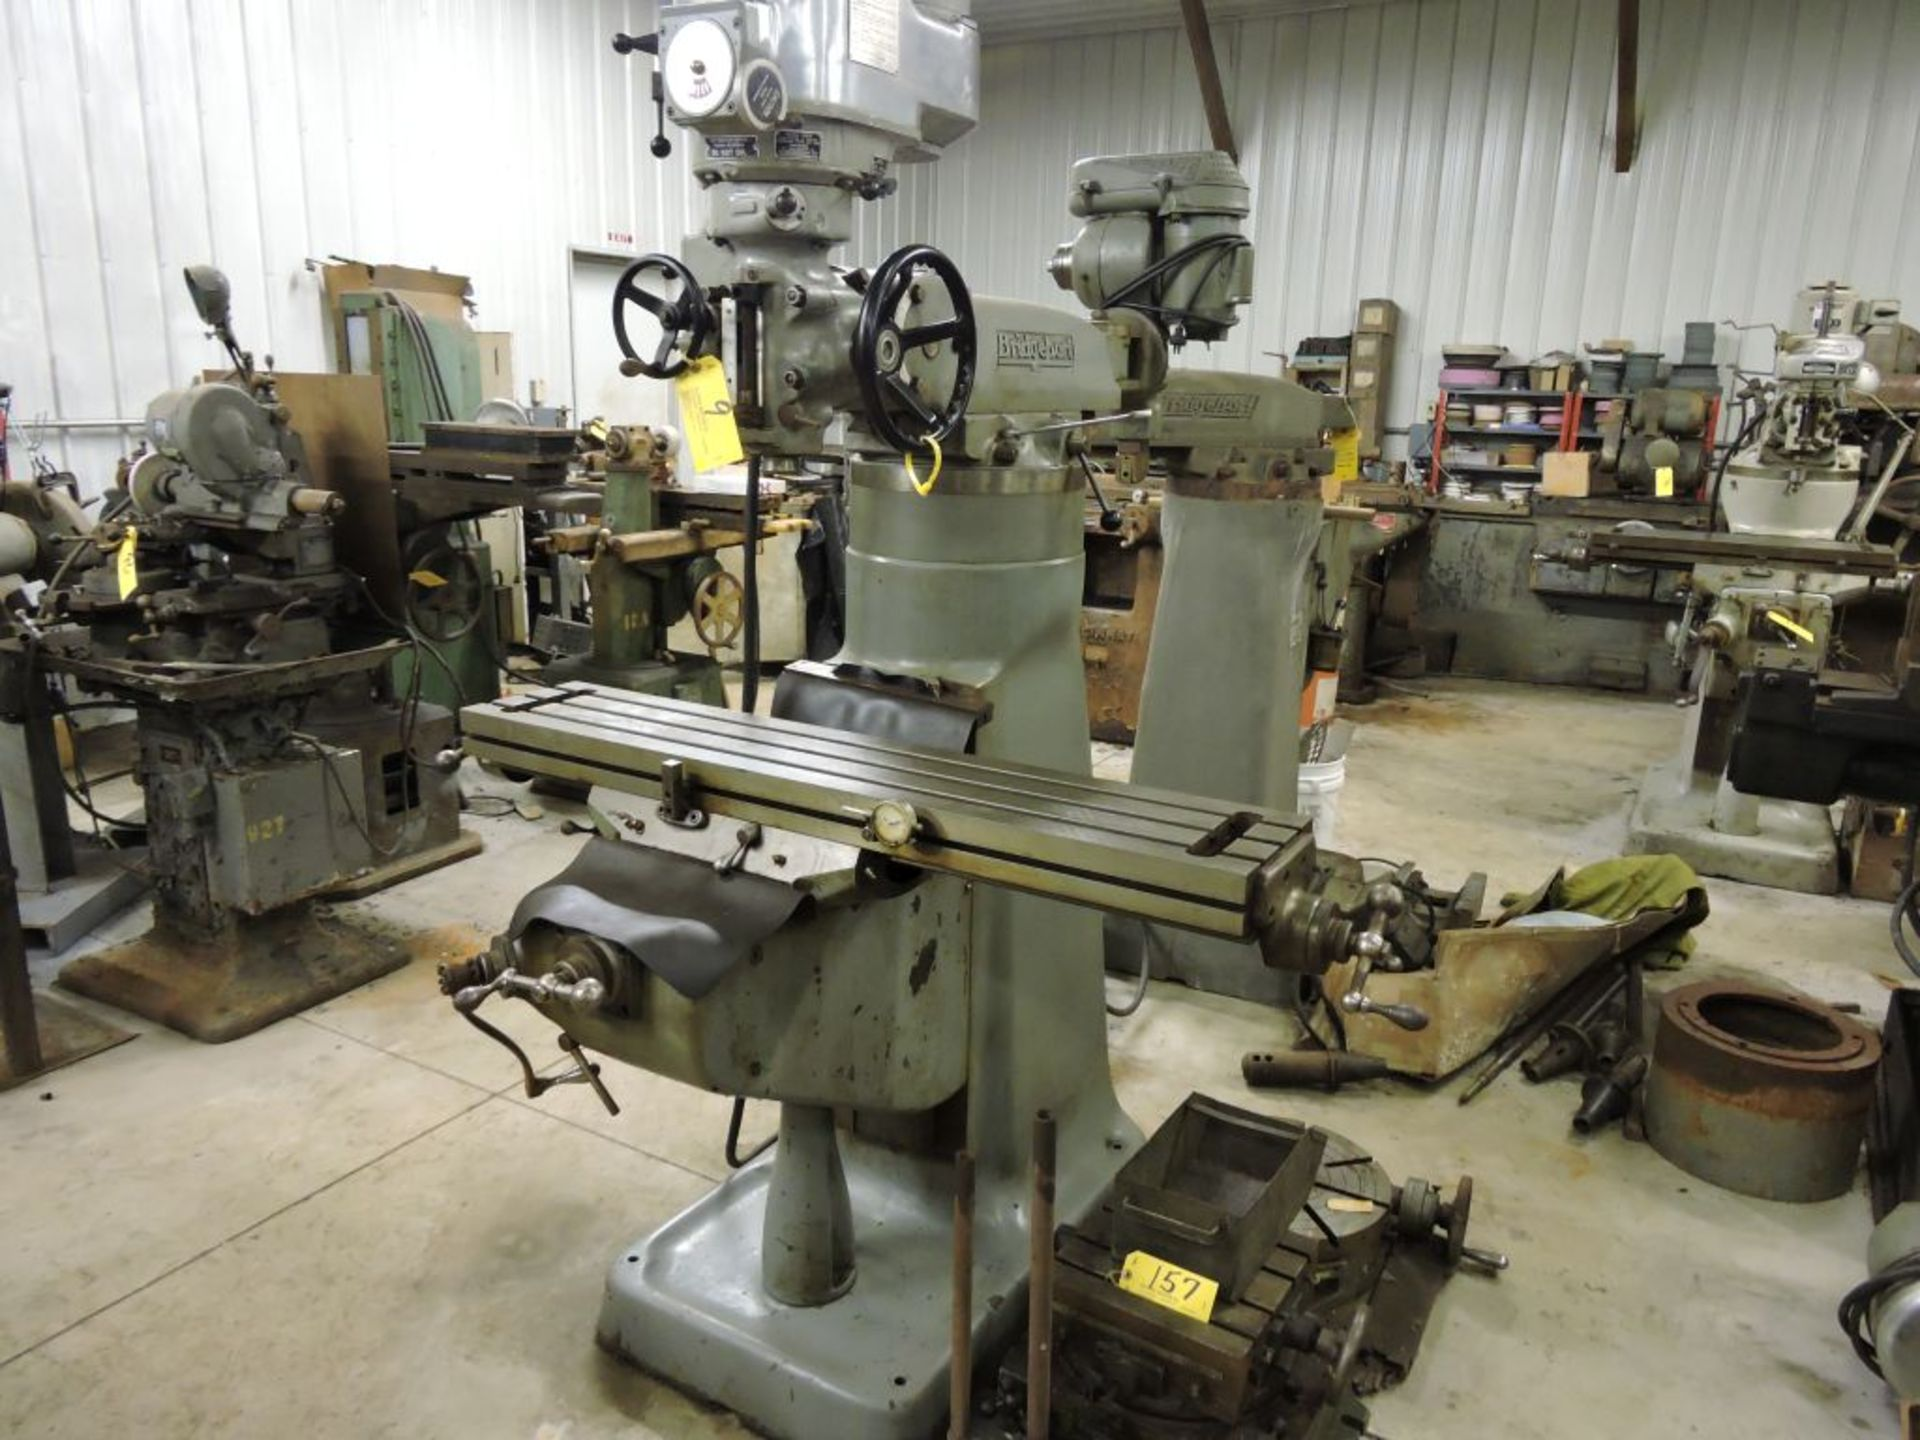 """Bridgeport mill, model 12-BR, sn 83978, 9"""" x 48"""" bed, manual (not down power), shaping attachment. - Image 12 of 15"""